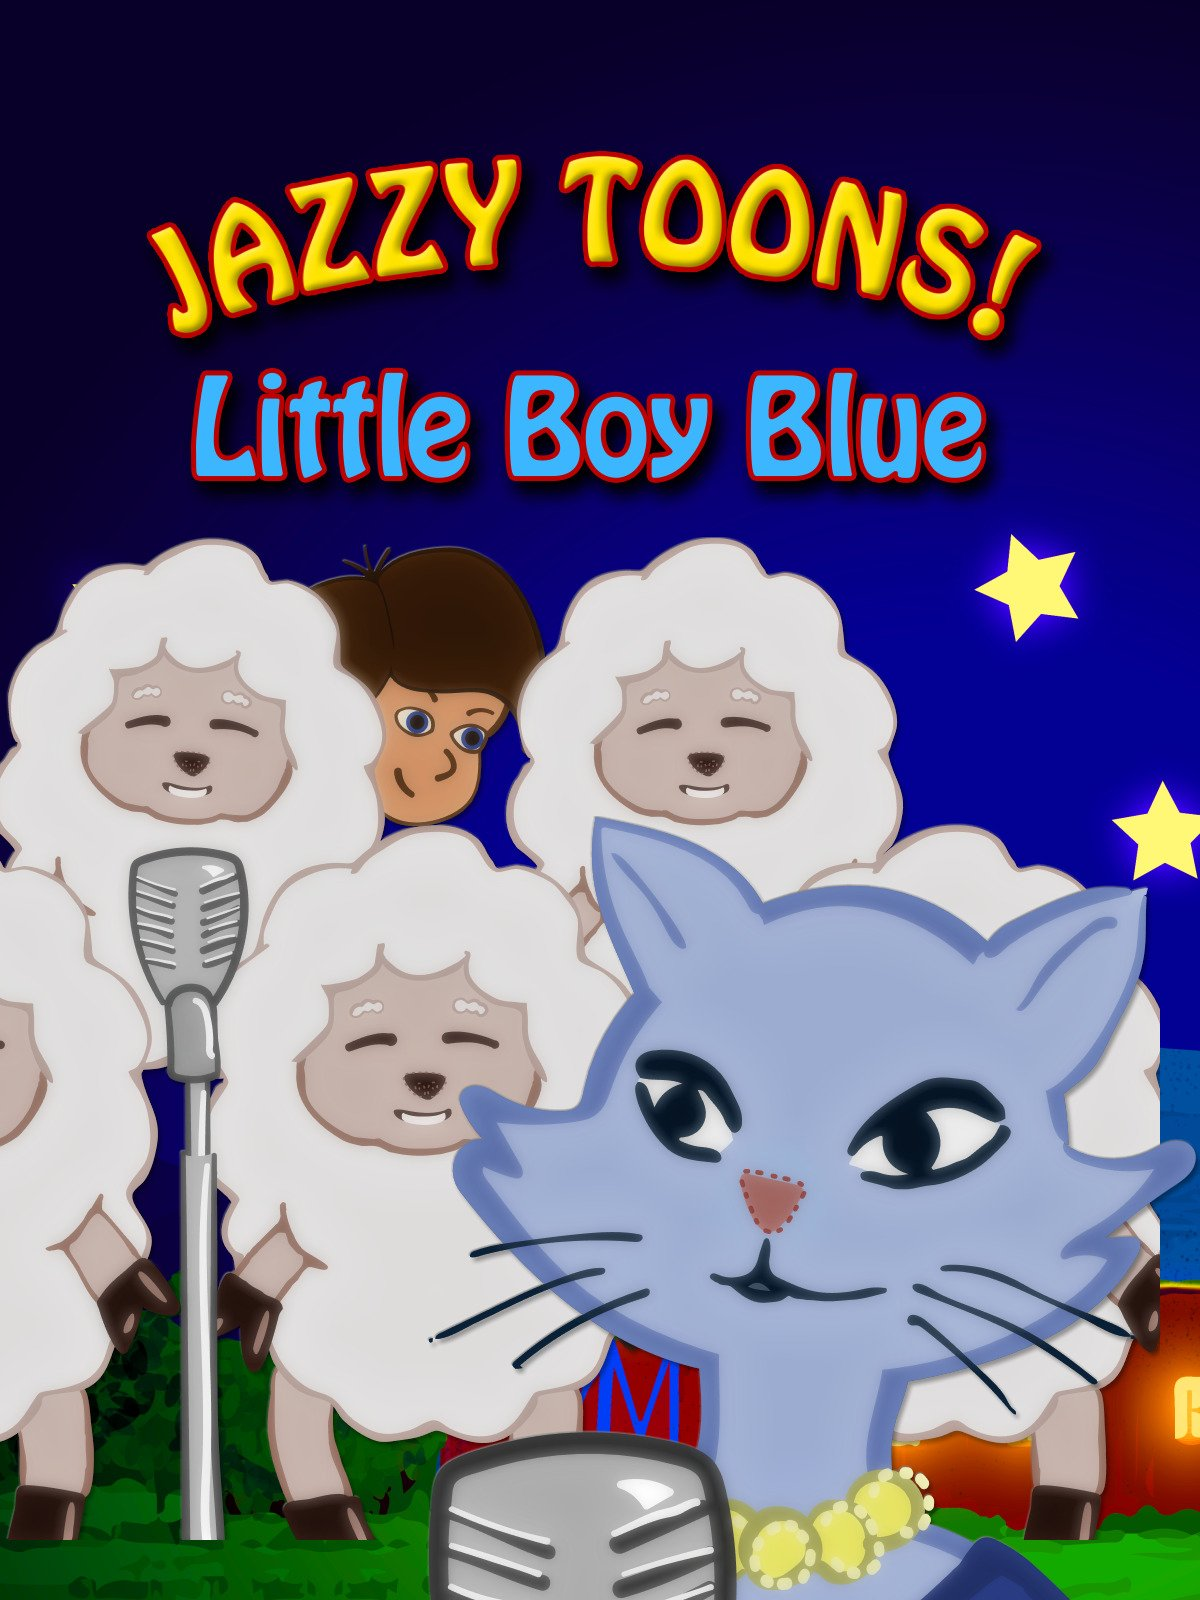 Jazzy Toons! Little Boy Blue